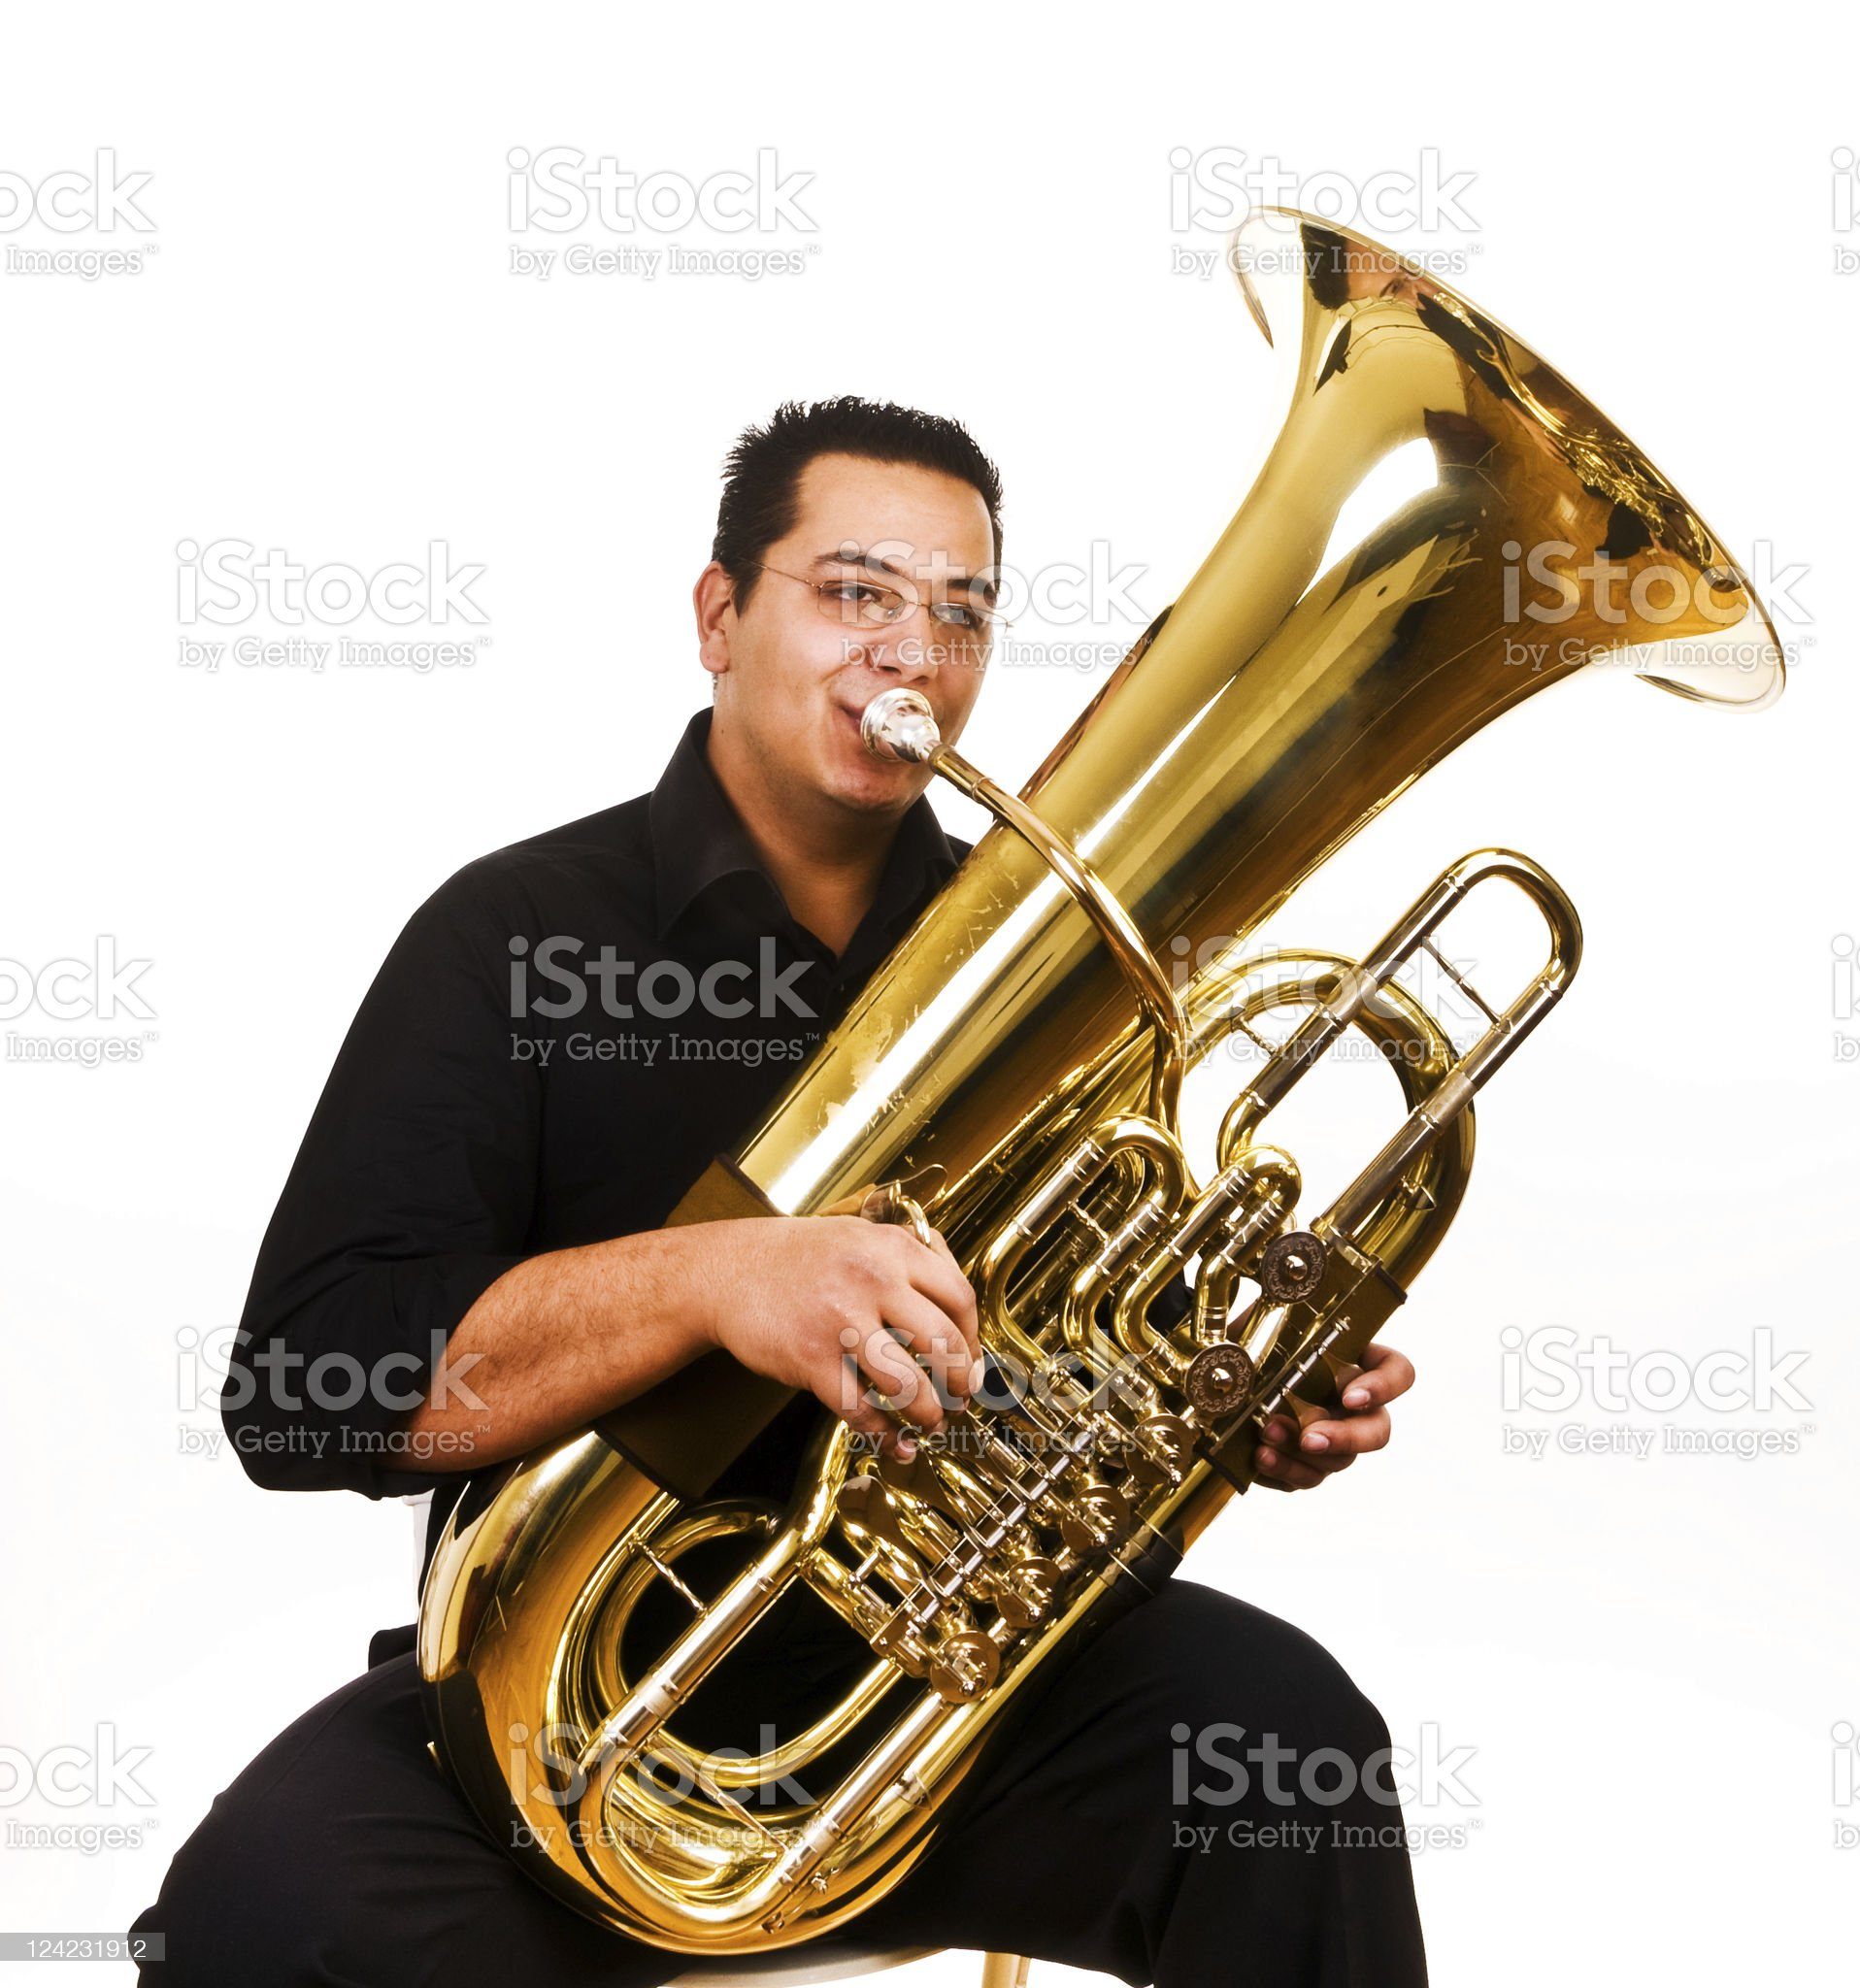 Male tubaist playing traditional tube instrument royalty-free stock photo